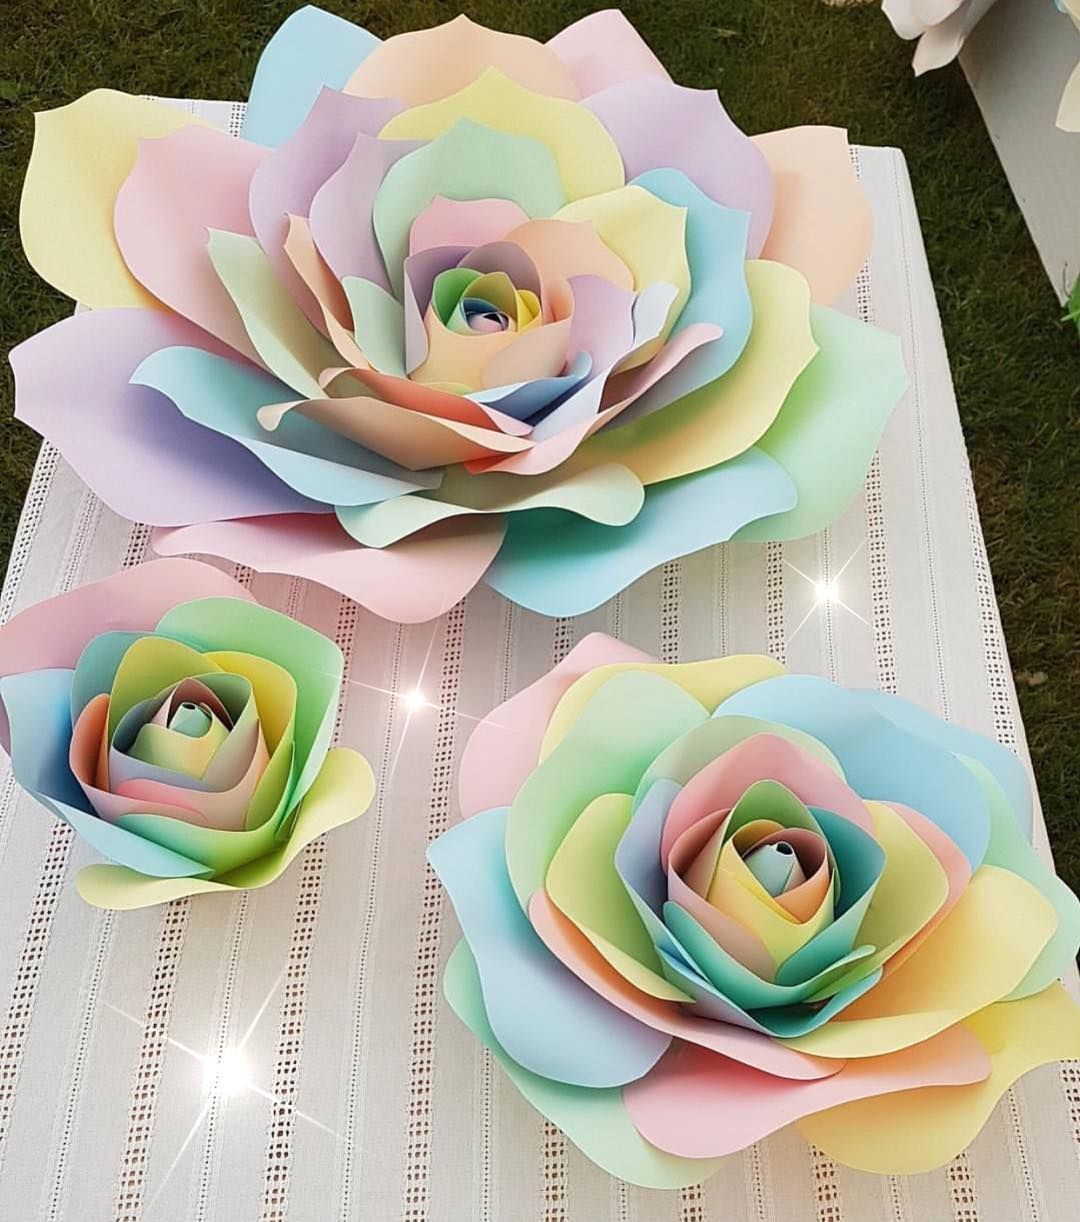 Pin by bonnie mcneill on flowers pinterest unicorns template 3 sizes of my giant unicorn paper roses for sale large is wide medium small plus delivery large paper flowers mightylinksfo